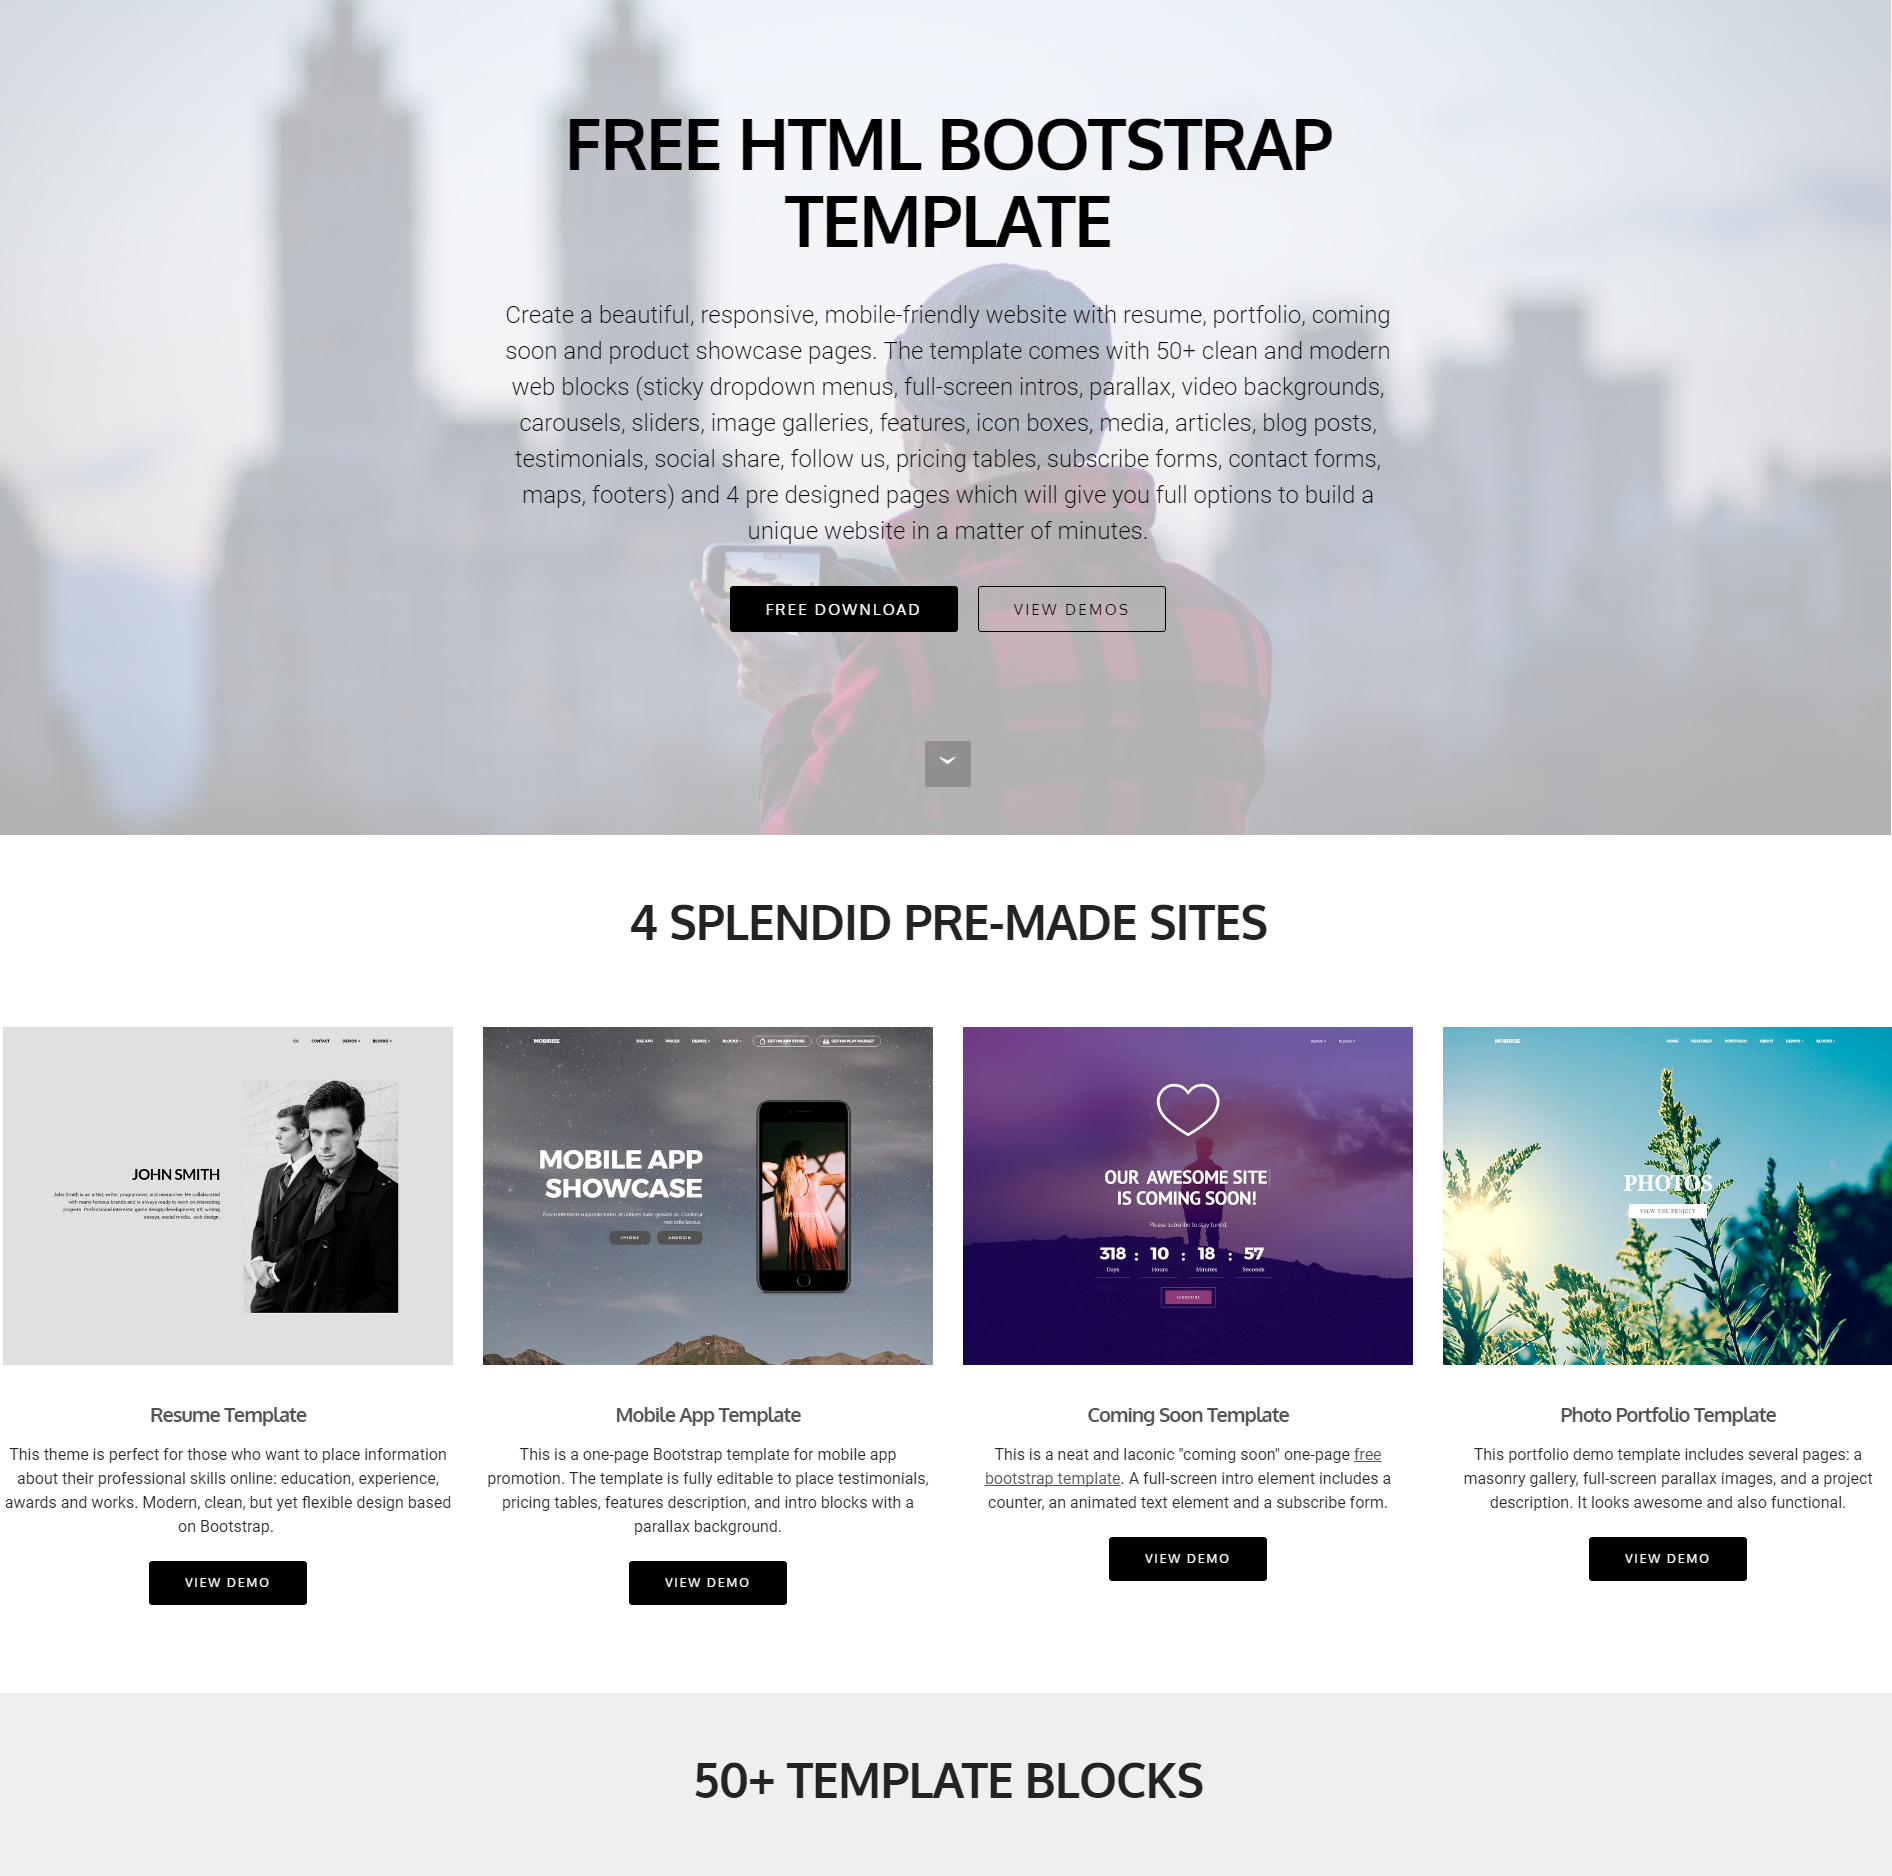 40+ Killer Free HTML Bootstrap Templates 2018